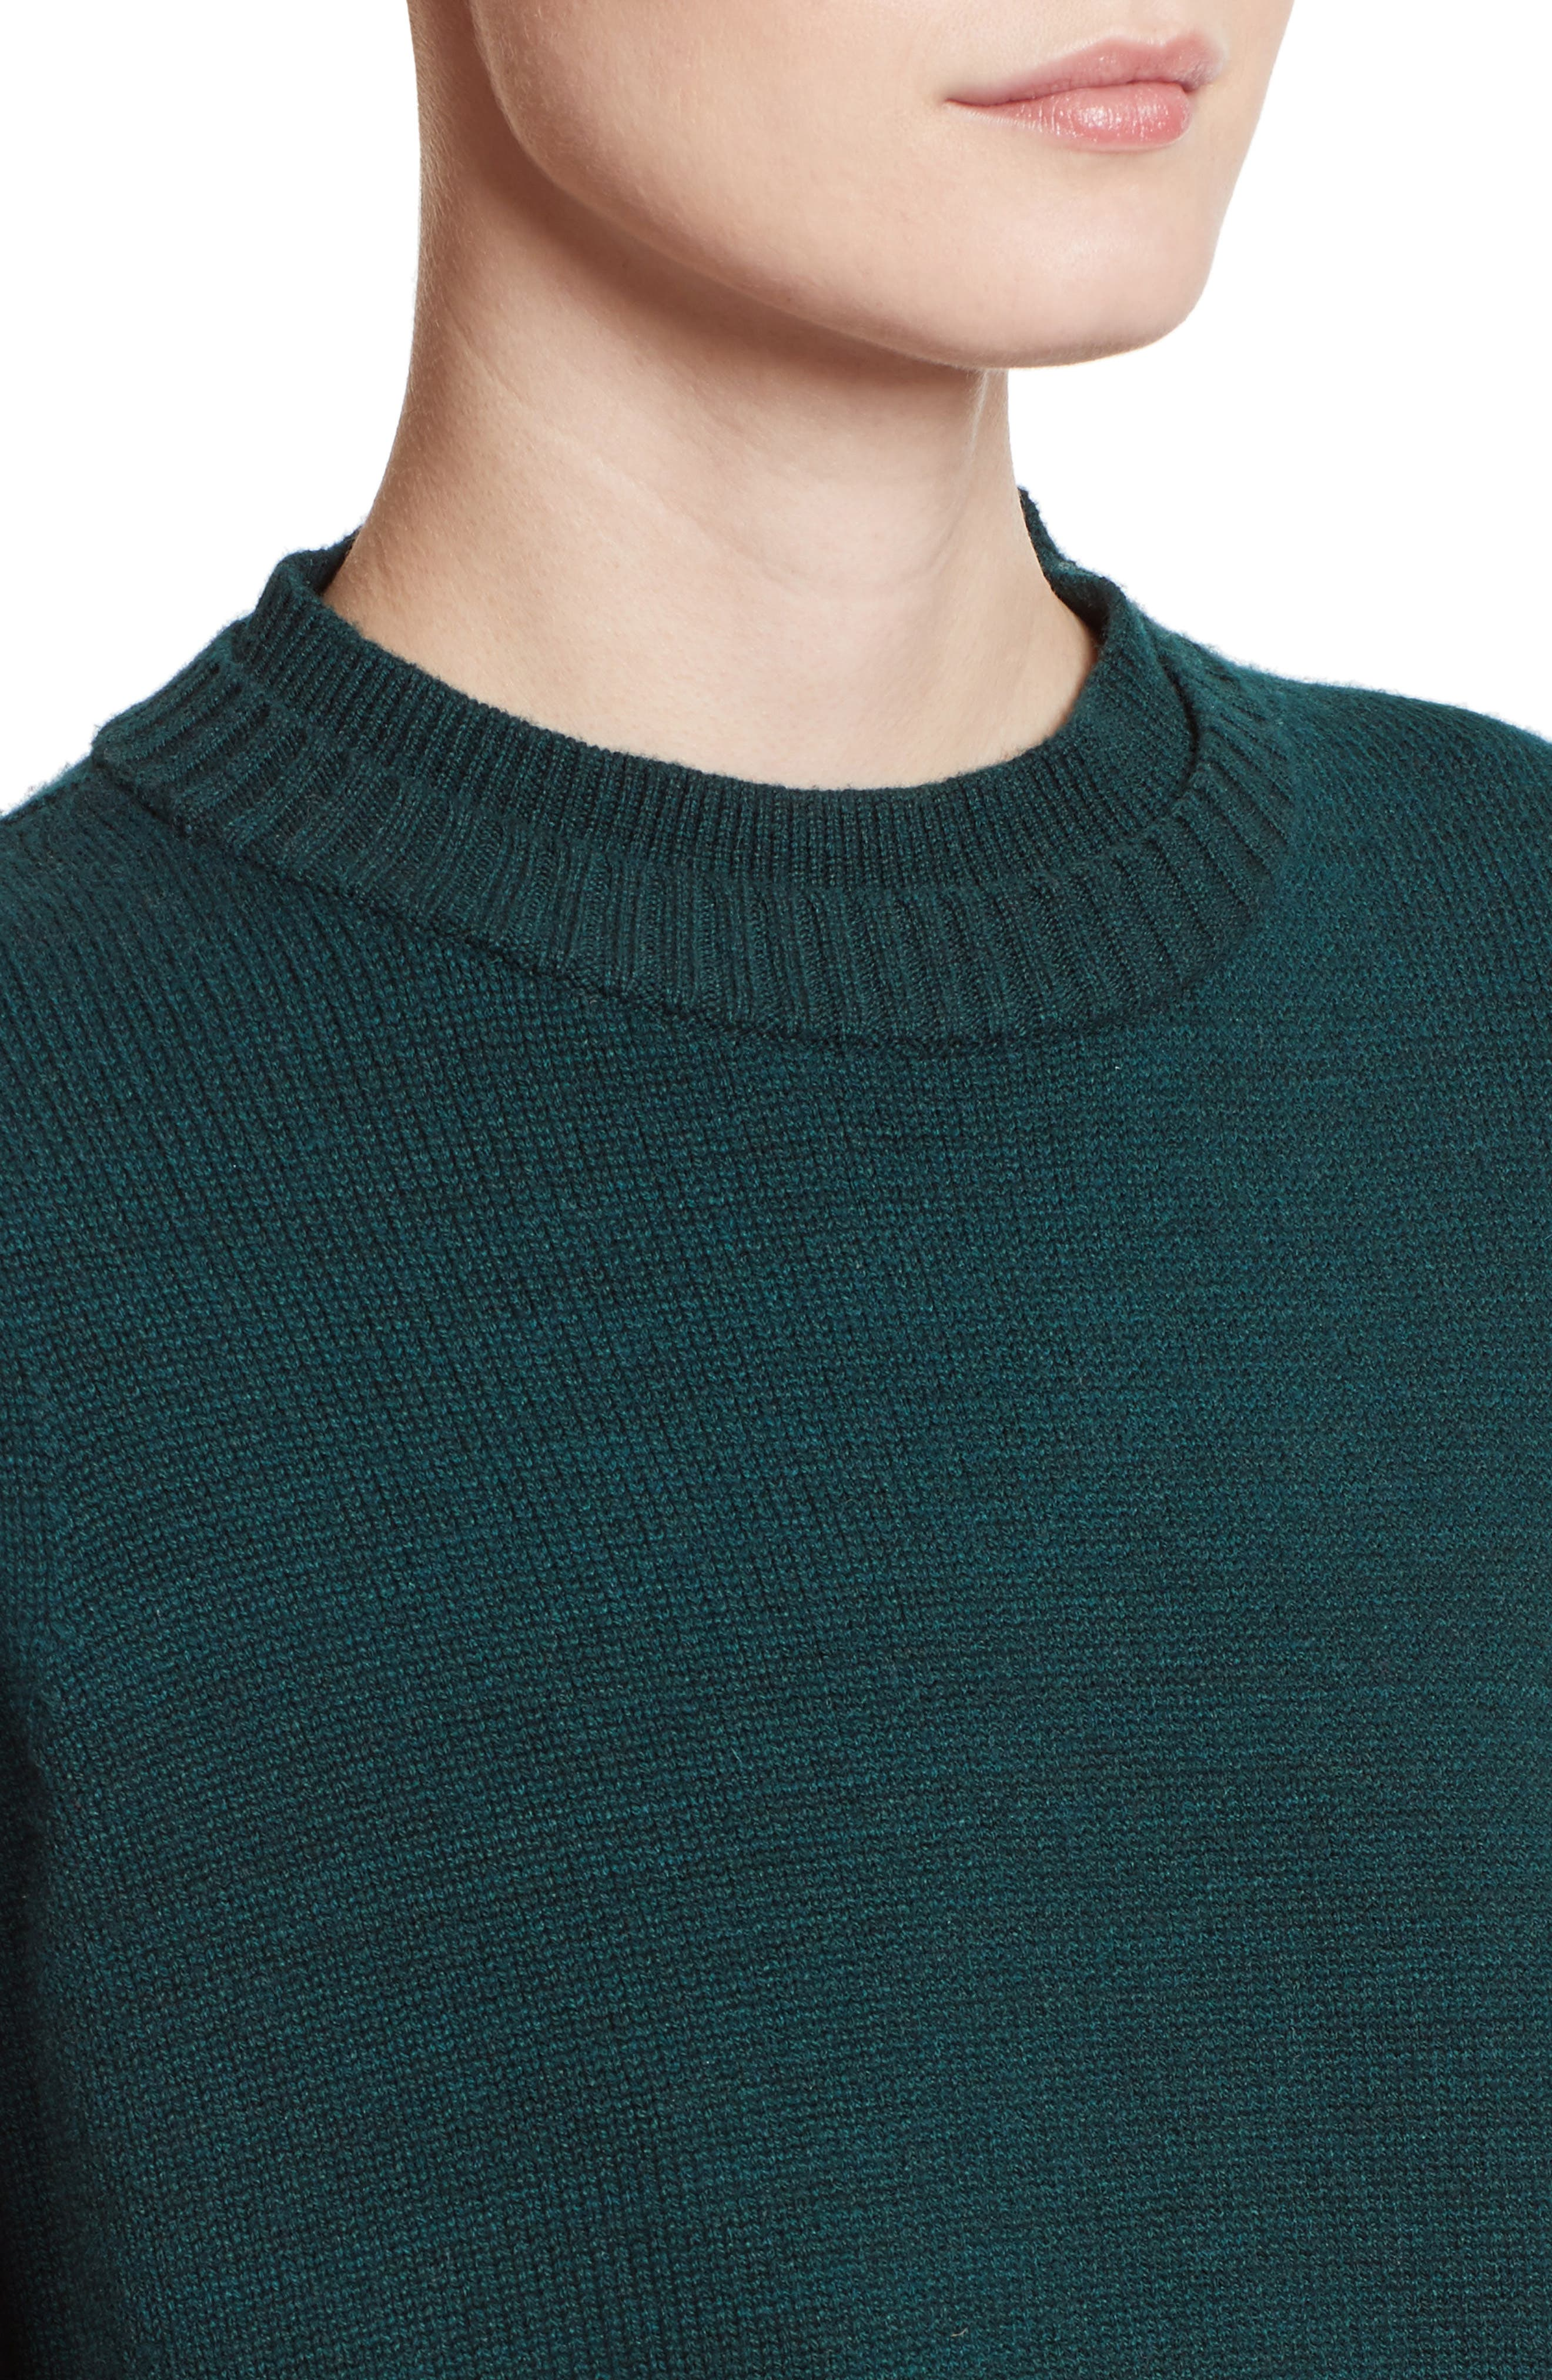 Wool, Silk & Cashmere Pullover,                             Alternate thumbnail 4, color,